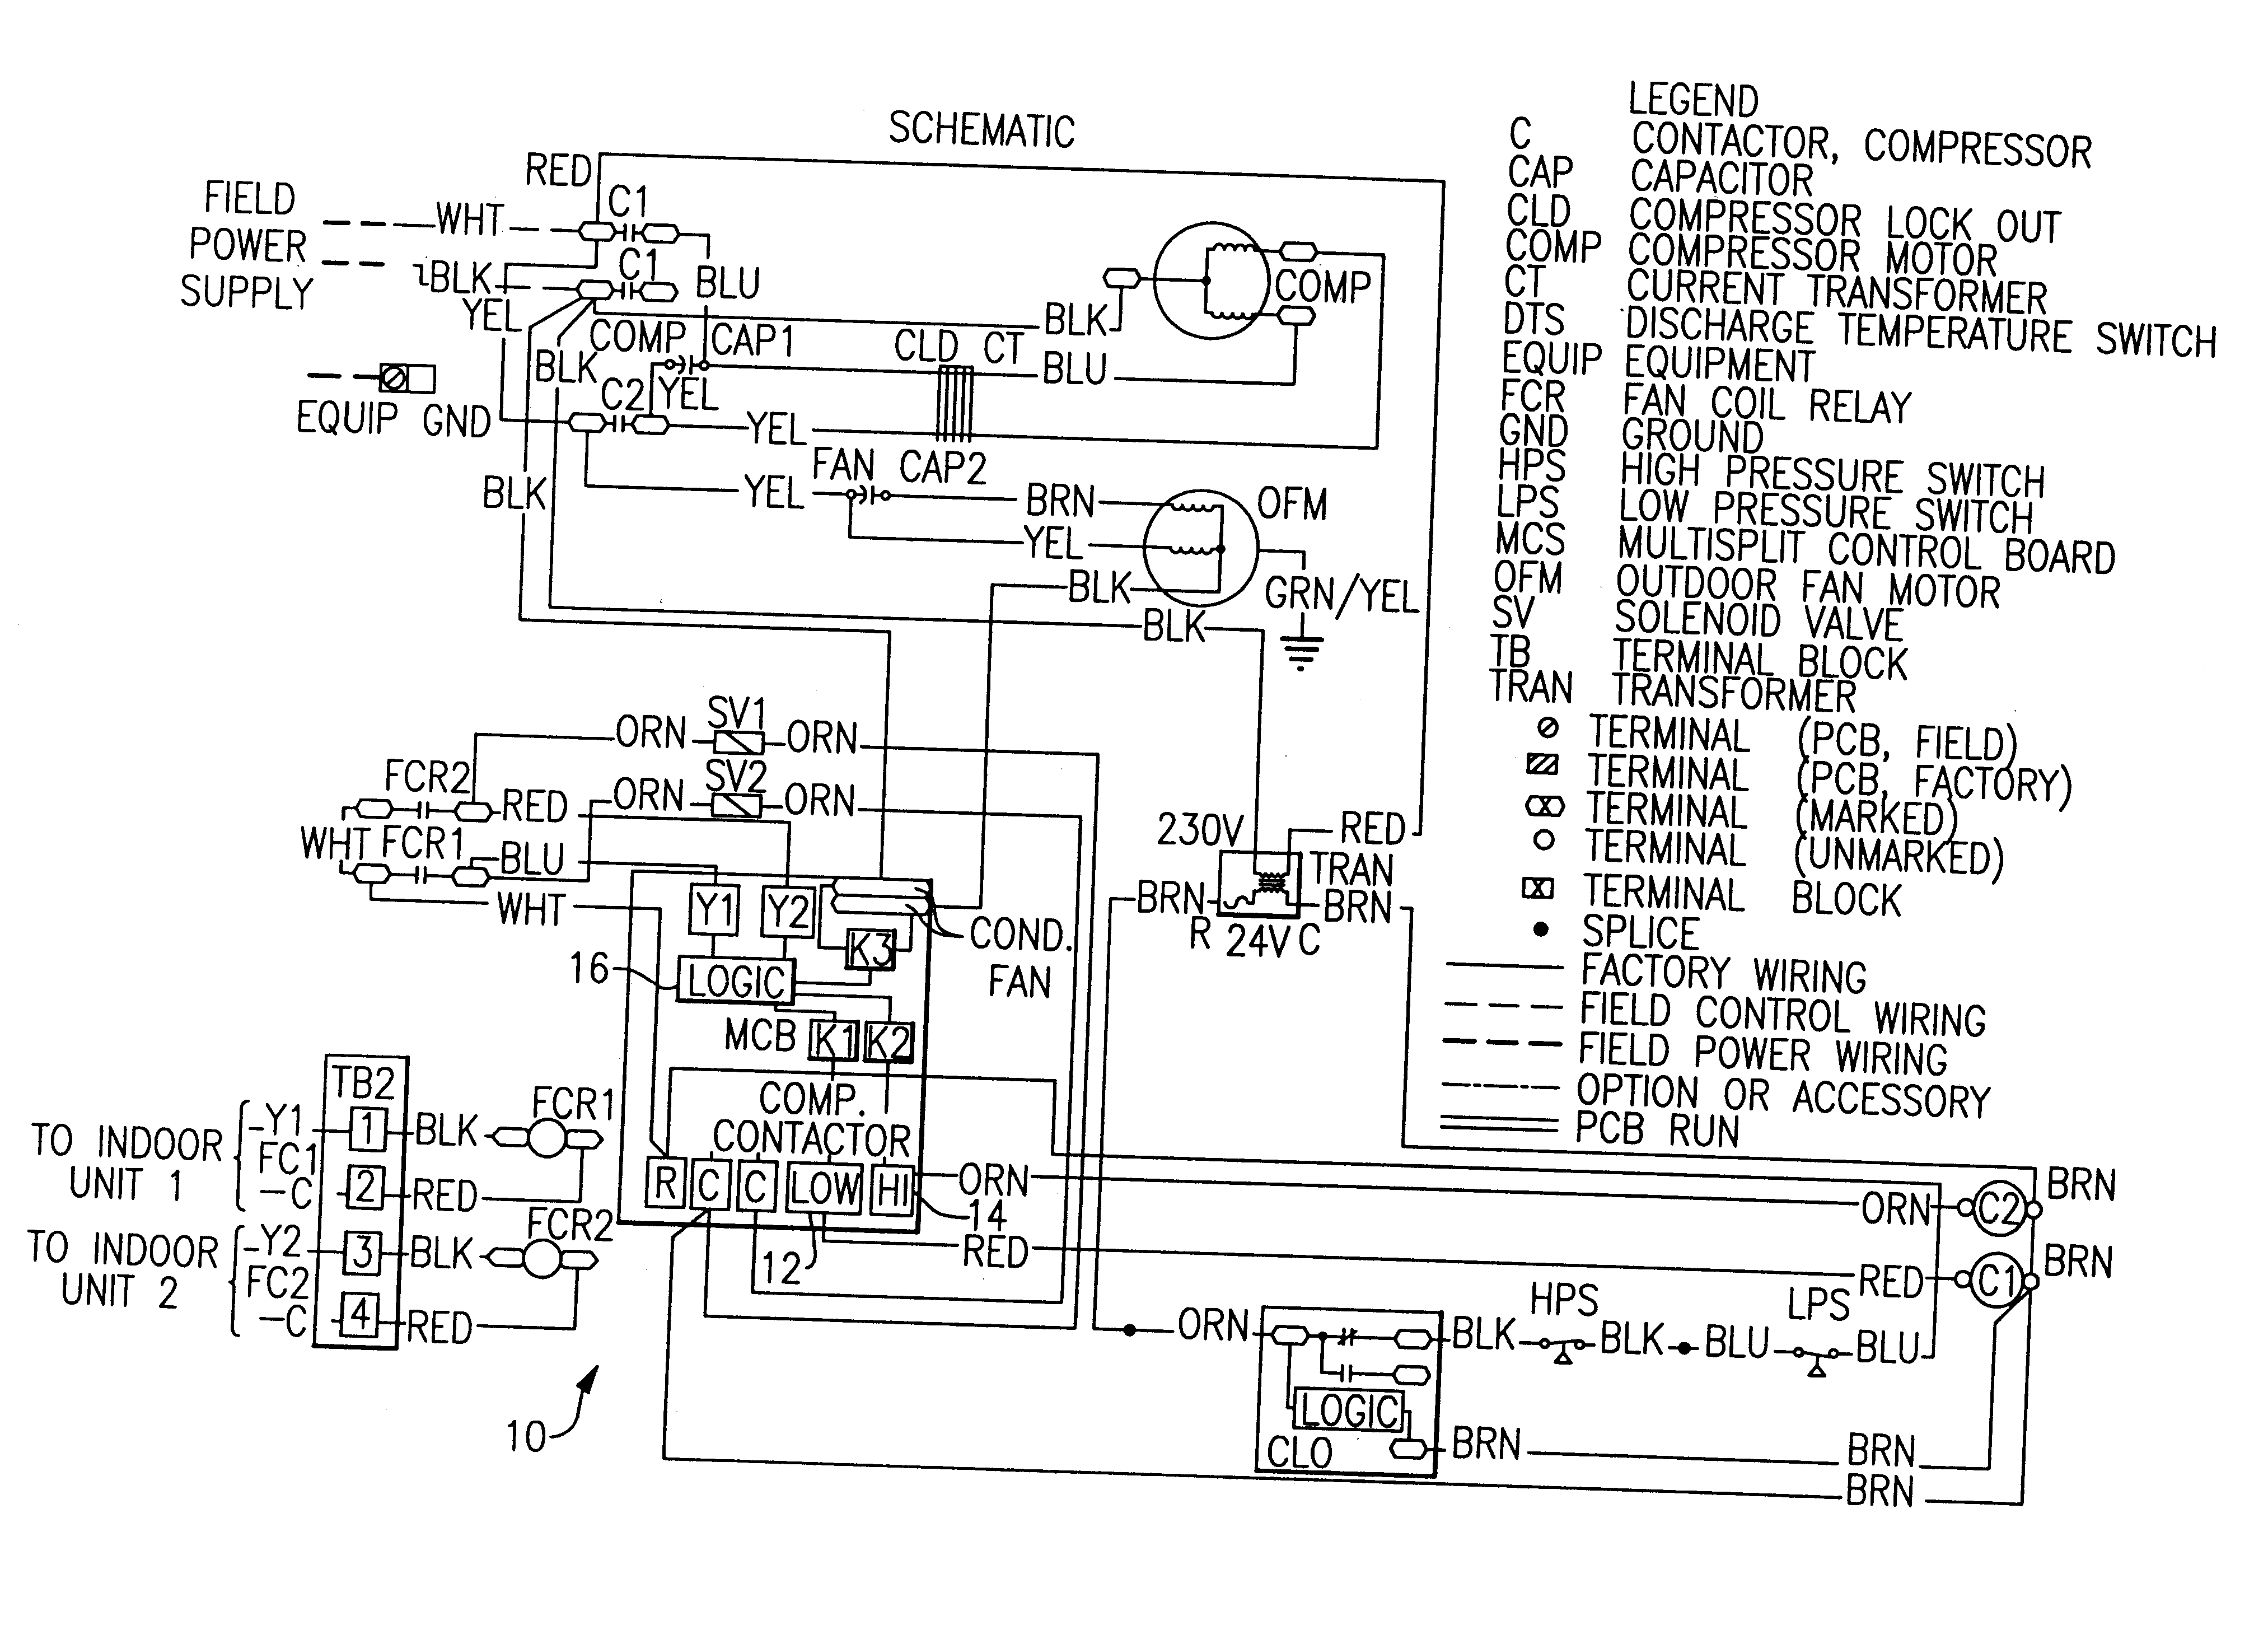 viair wiring diagram with Wiring Diagram For Bristol  Pressor on Carrier  pressor Wiring Diagram besides Taco Zone Wiring Installation additionally Wiring Diagram For Bristol  pressor besides Harley Fxr Transmission Parts Diagram likewise Downeaster Spreader Wiring Diagram.